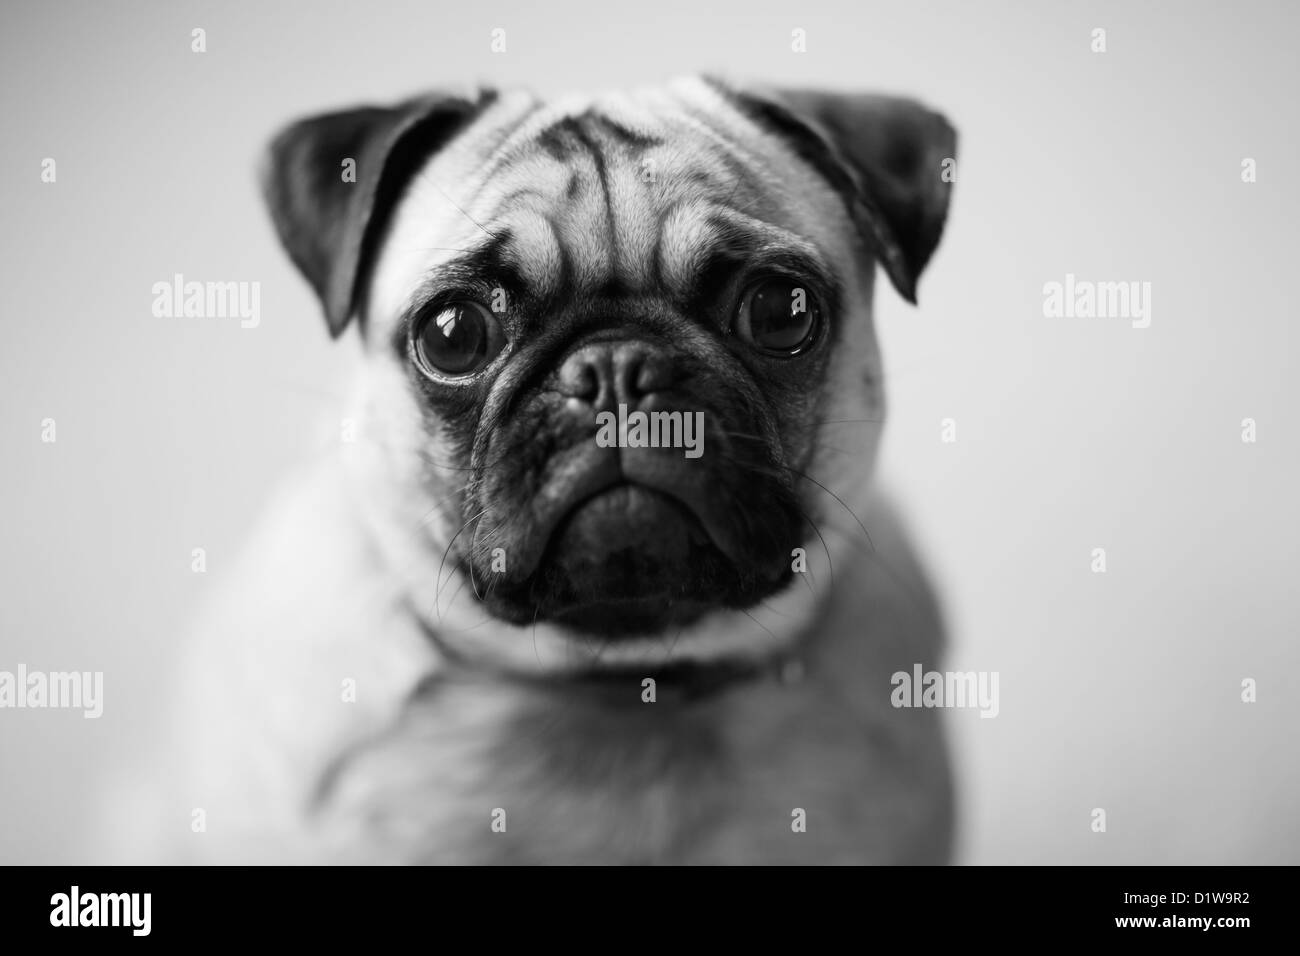 The eyes of a pet puppy pug dog sitting next to the window. - Stock Image